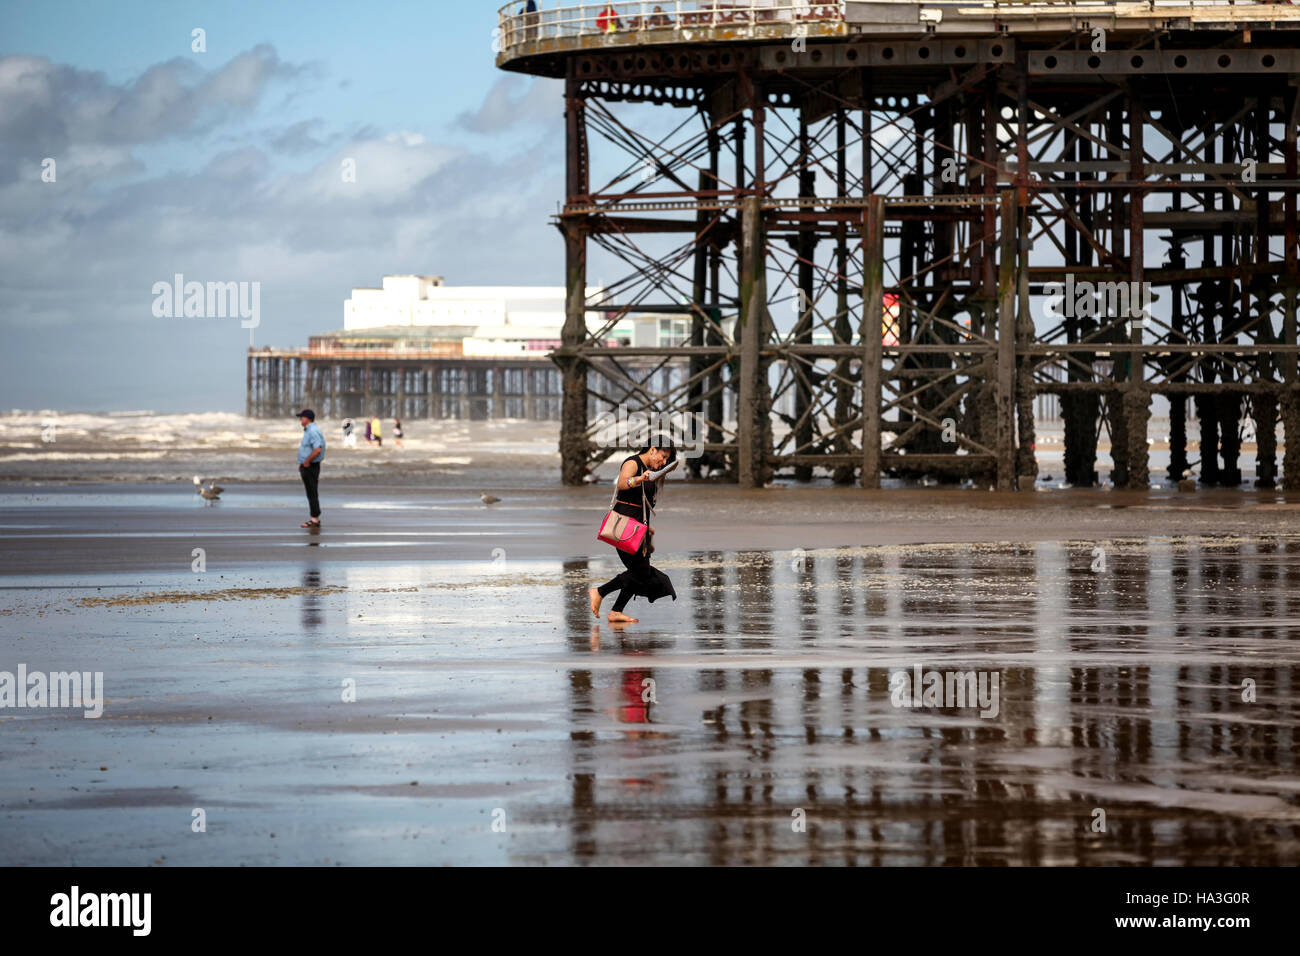 Central pier blackpool - Stock Image